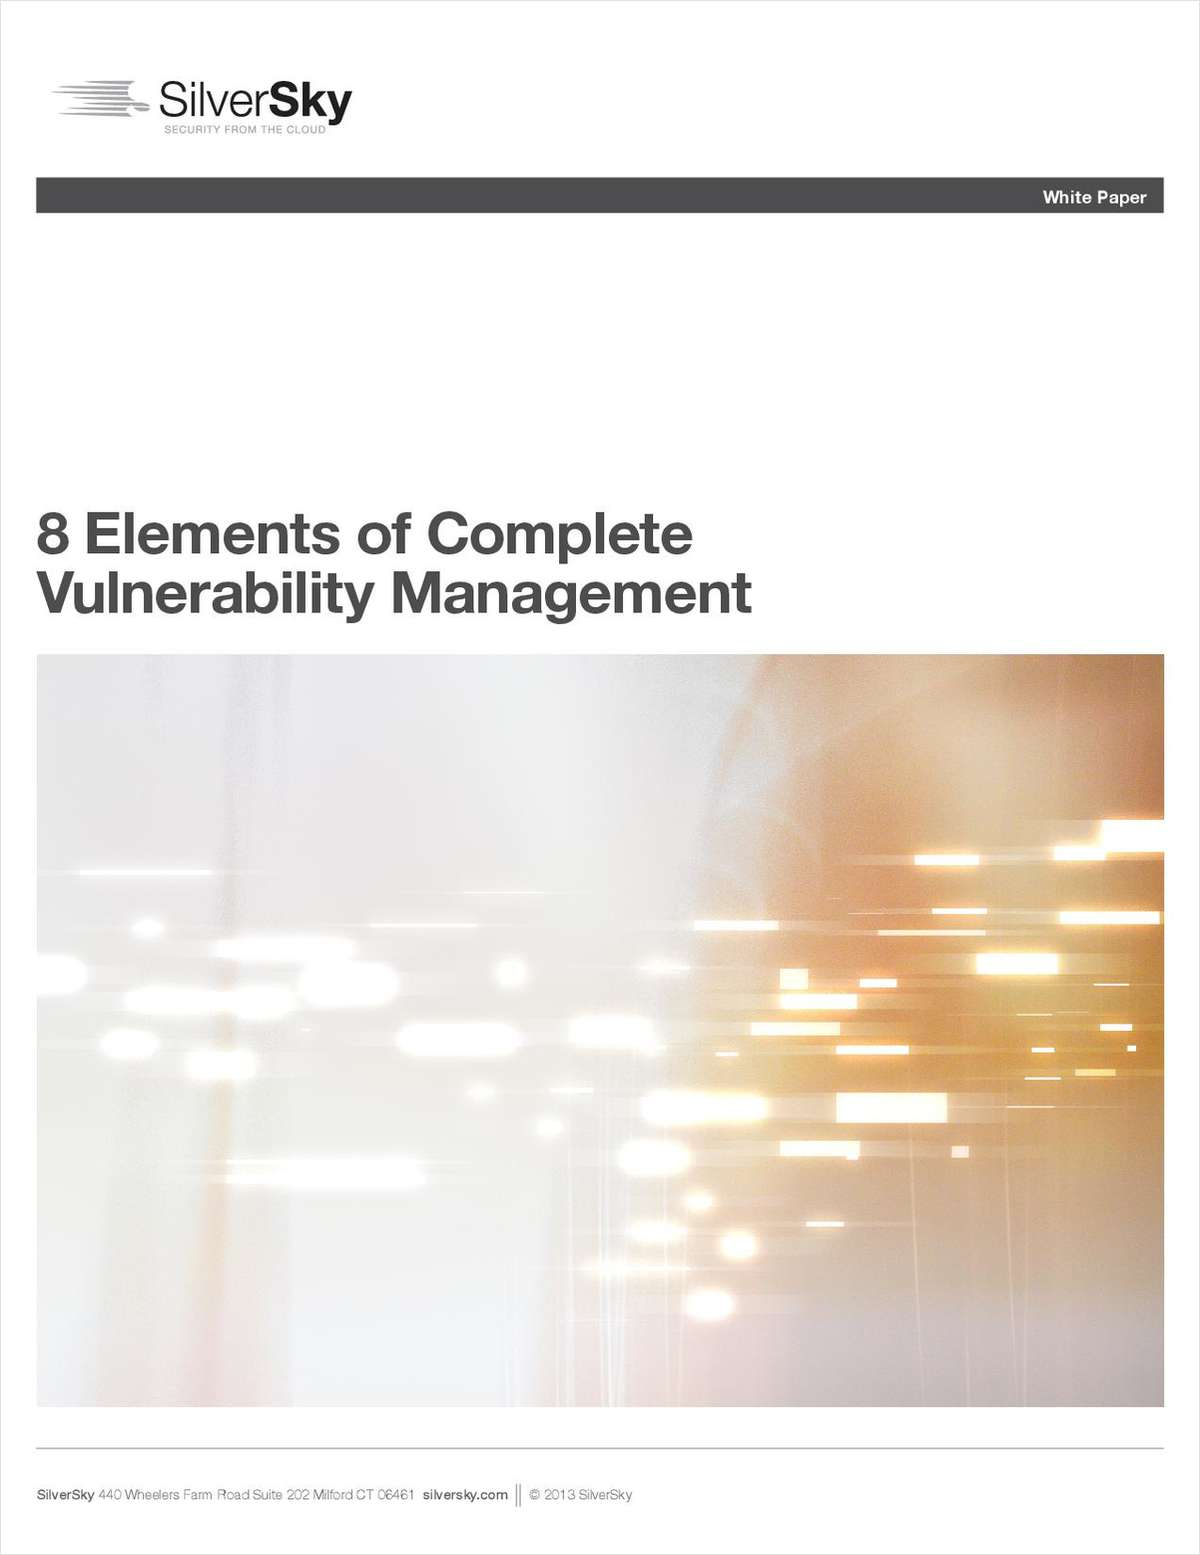 8 Elements of Complete Vulnerability Management